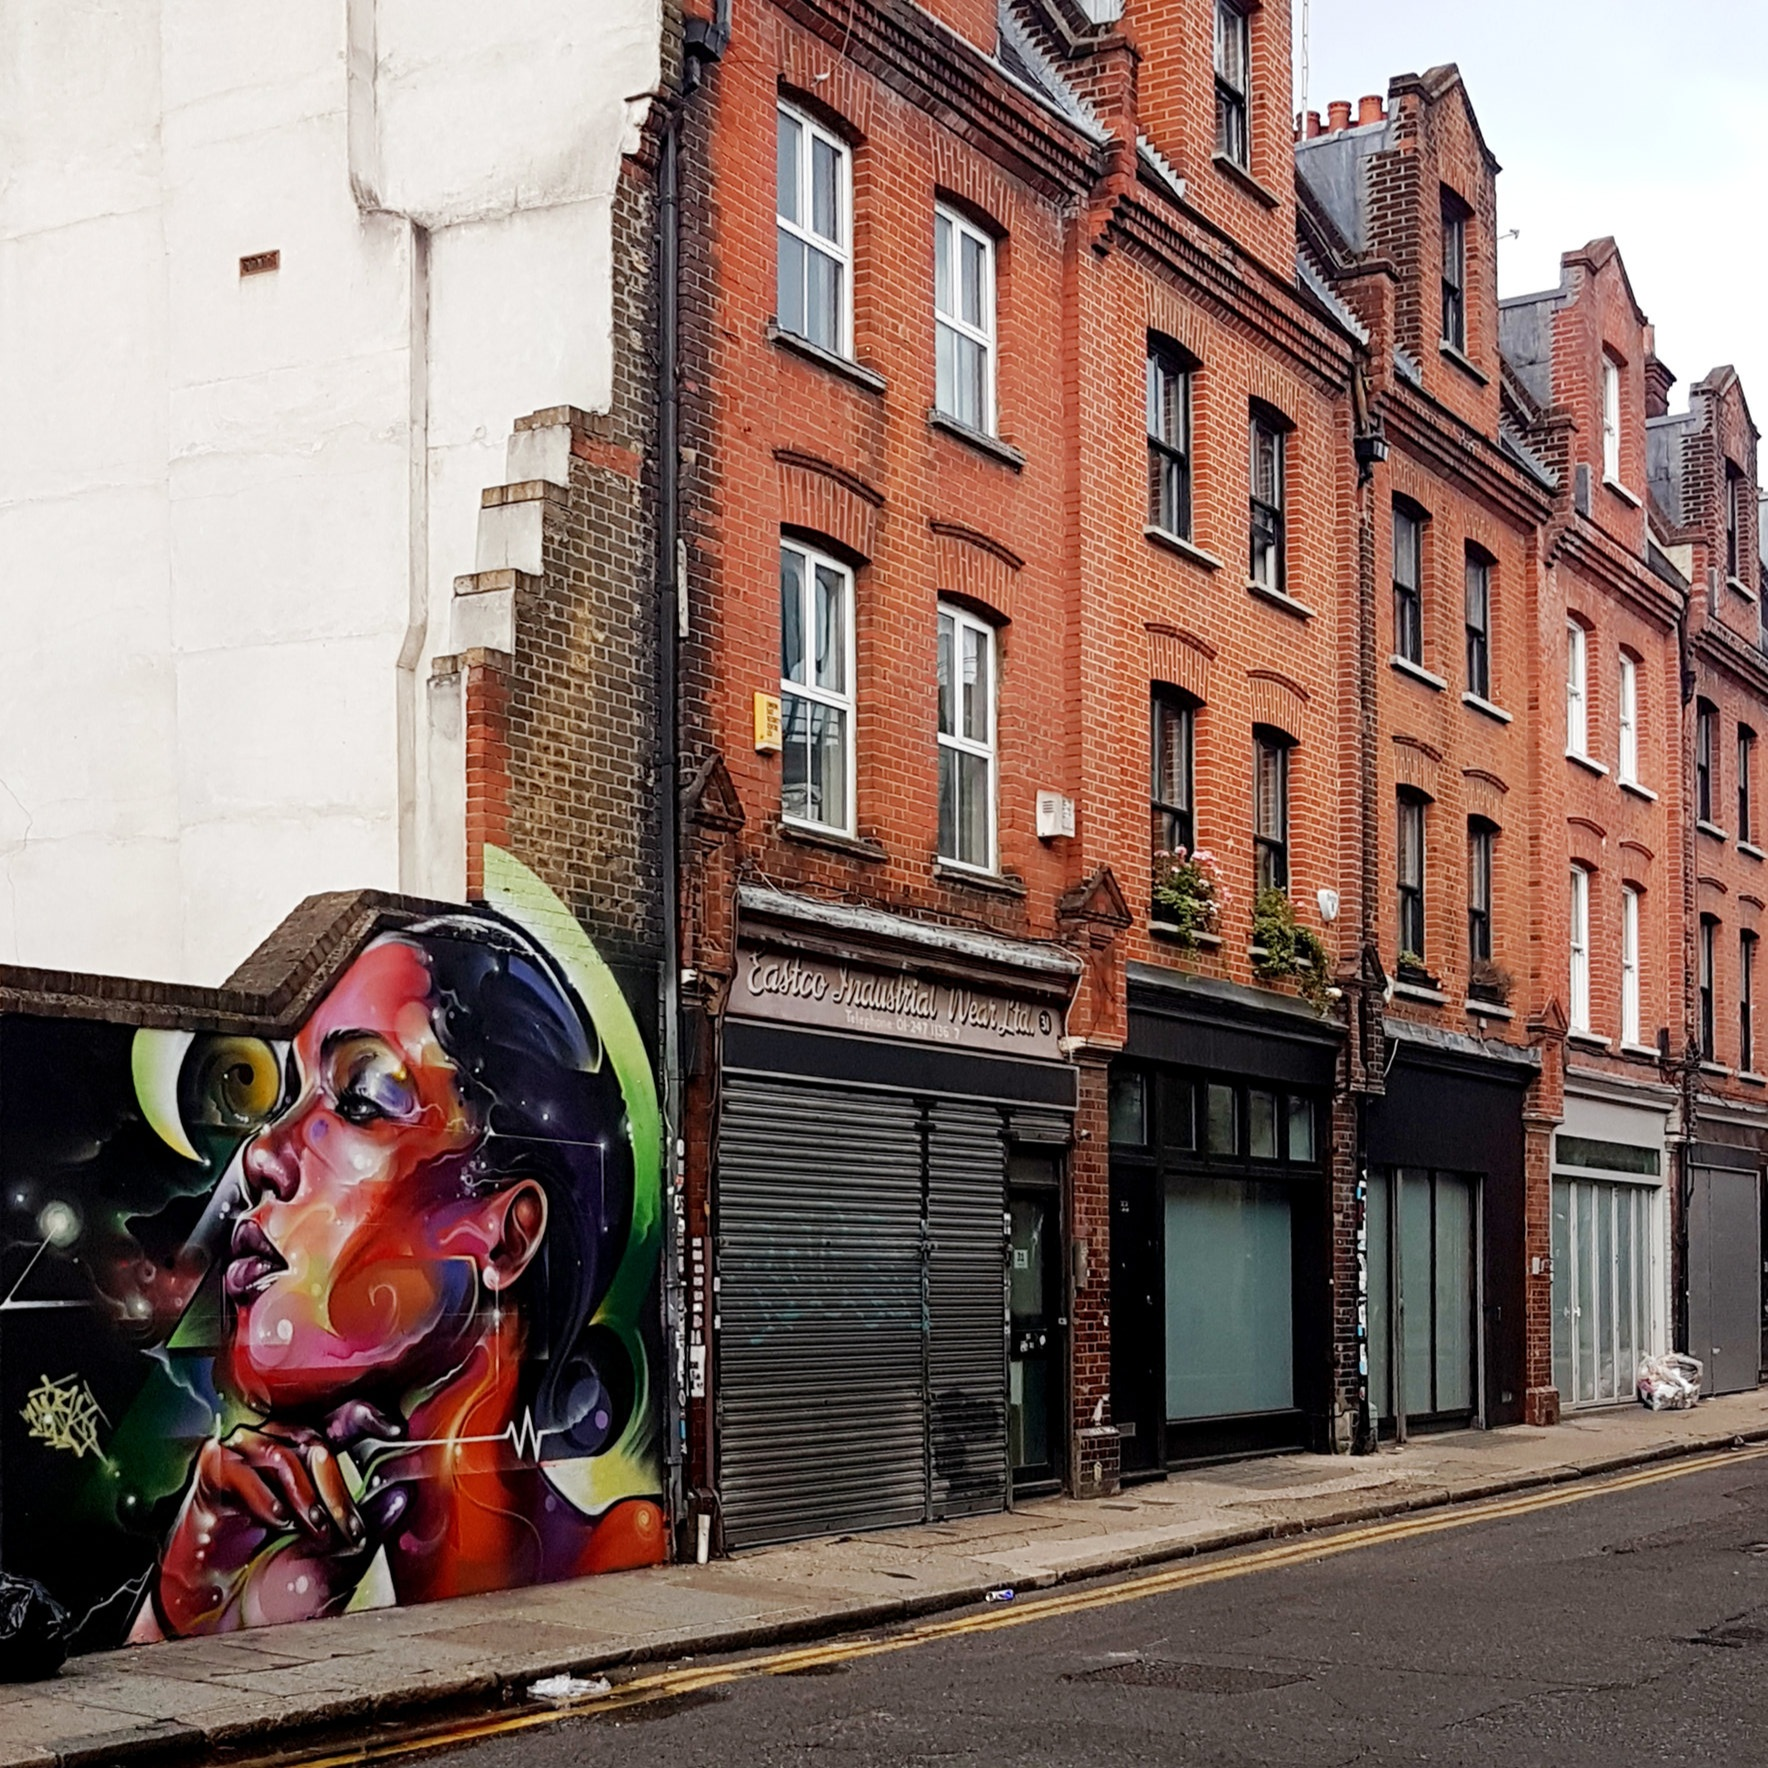 Street art near Brick Lane, London